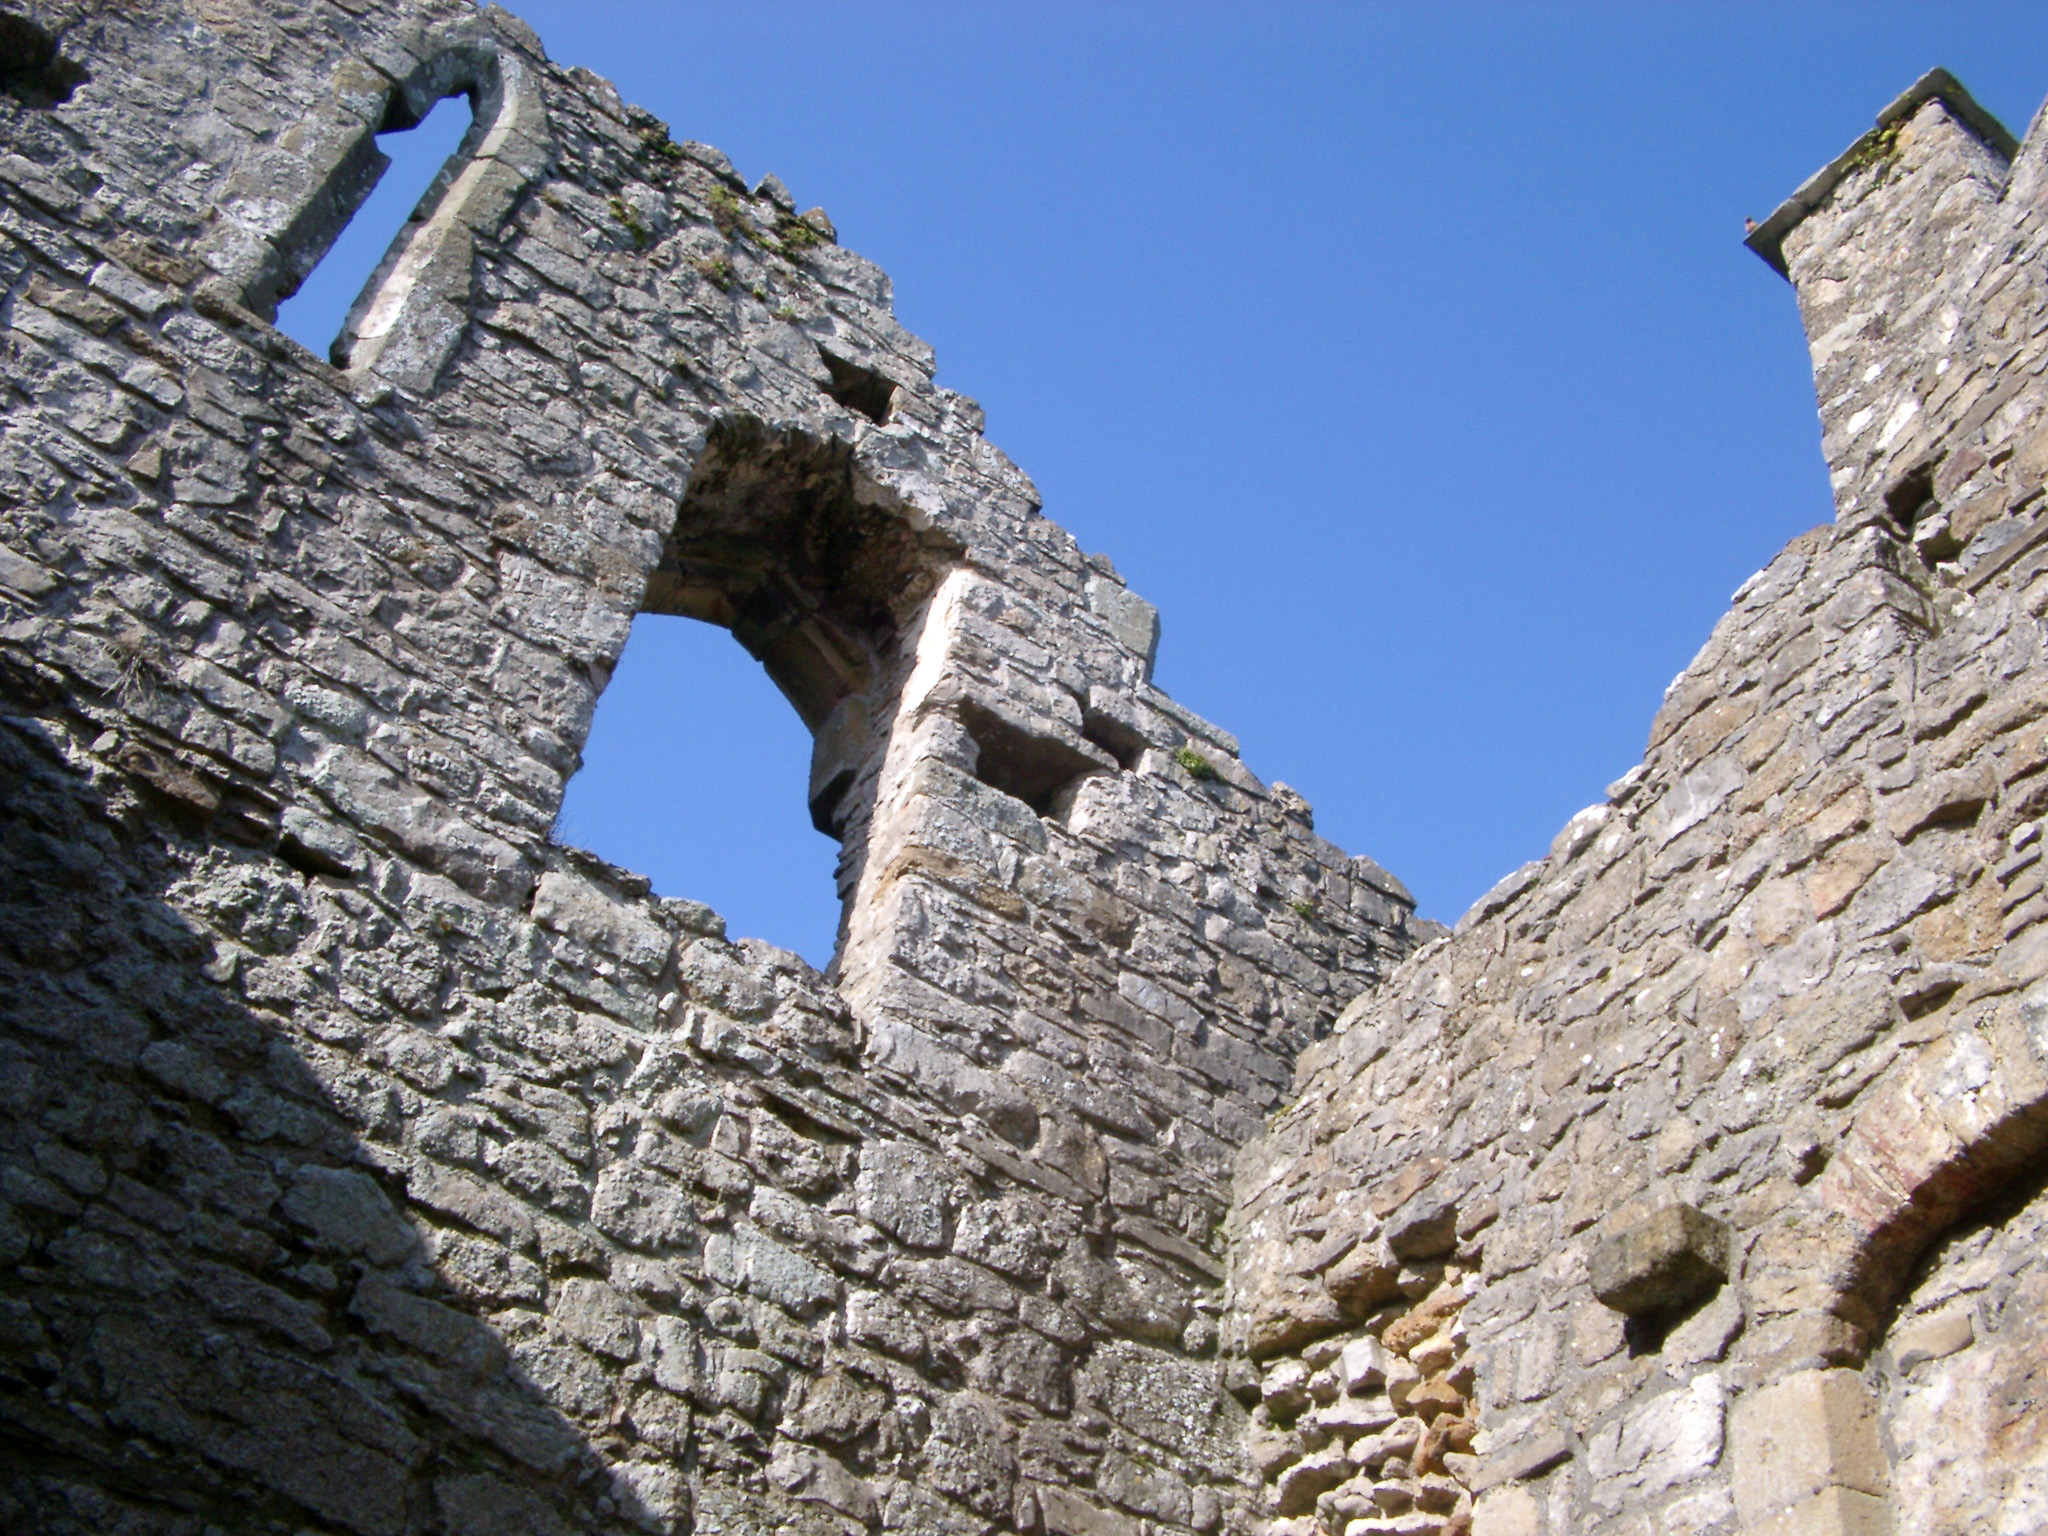 Old stone wall with window openings in a ruined building, low angle looking up against blue sky